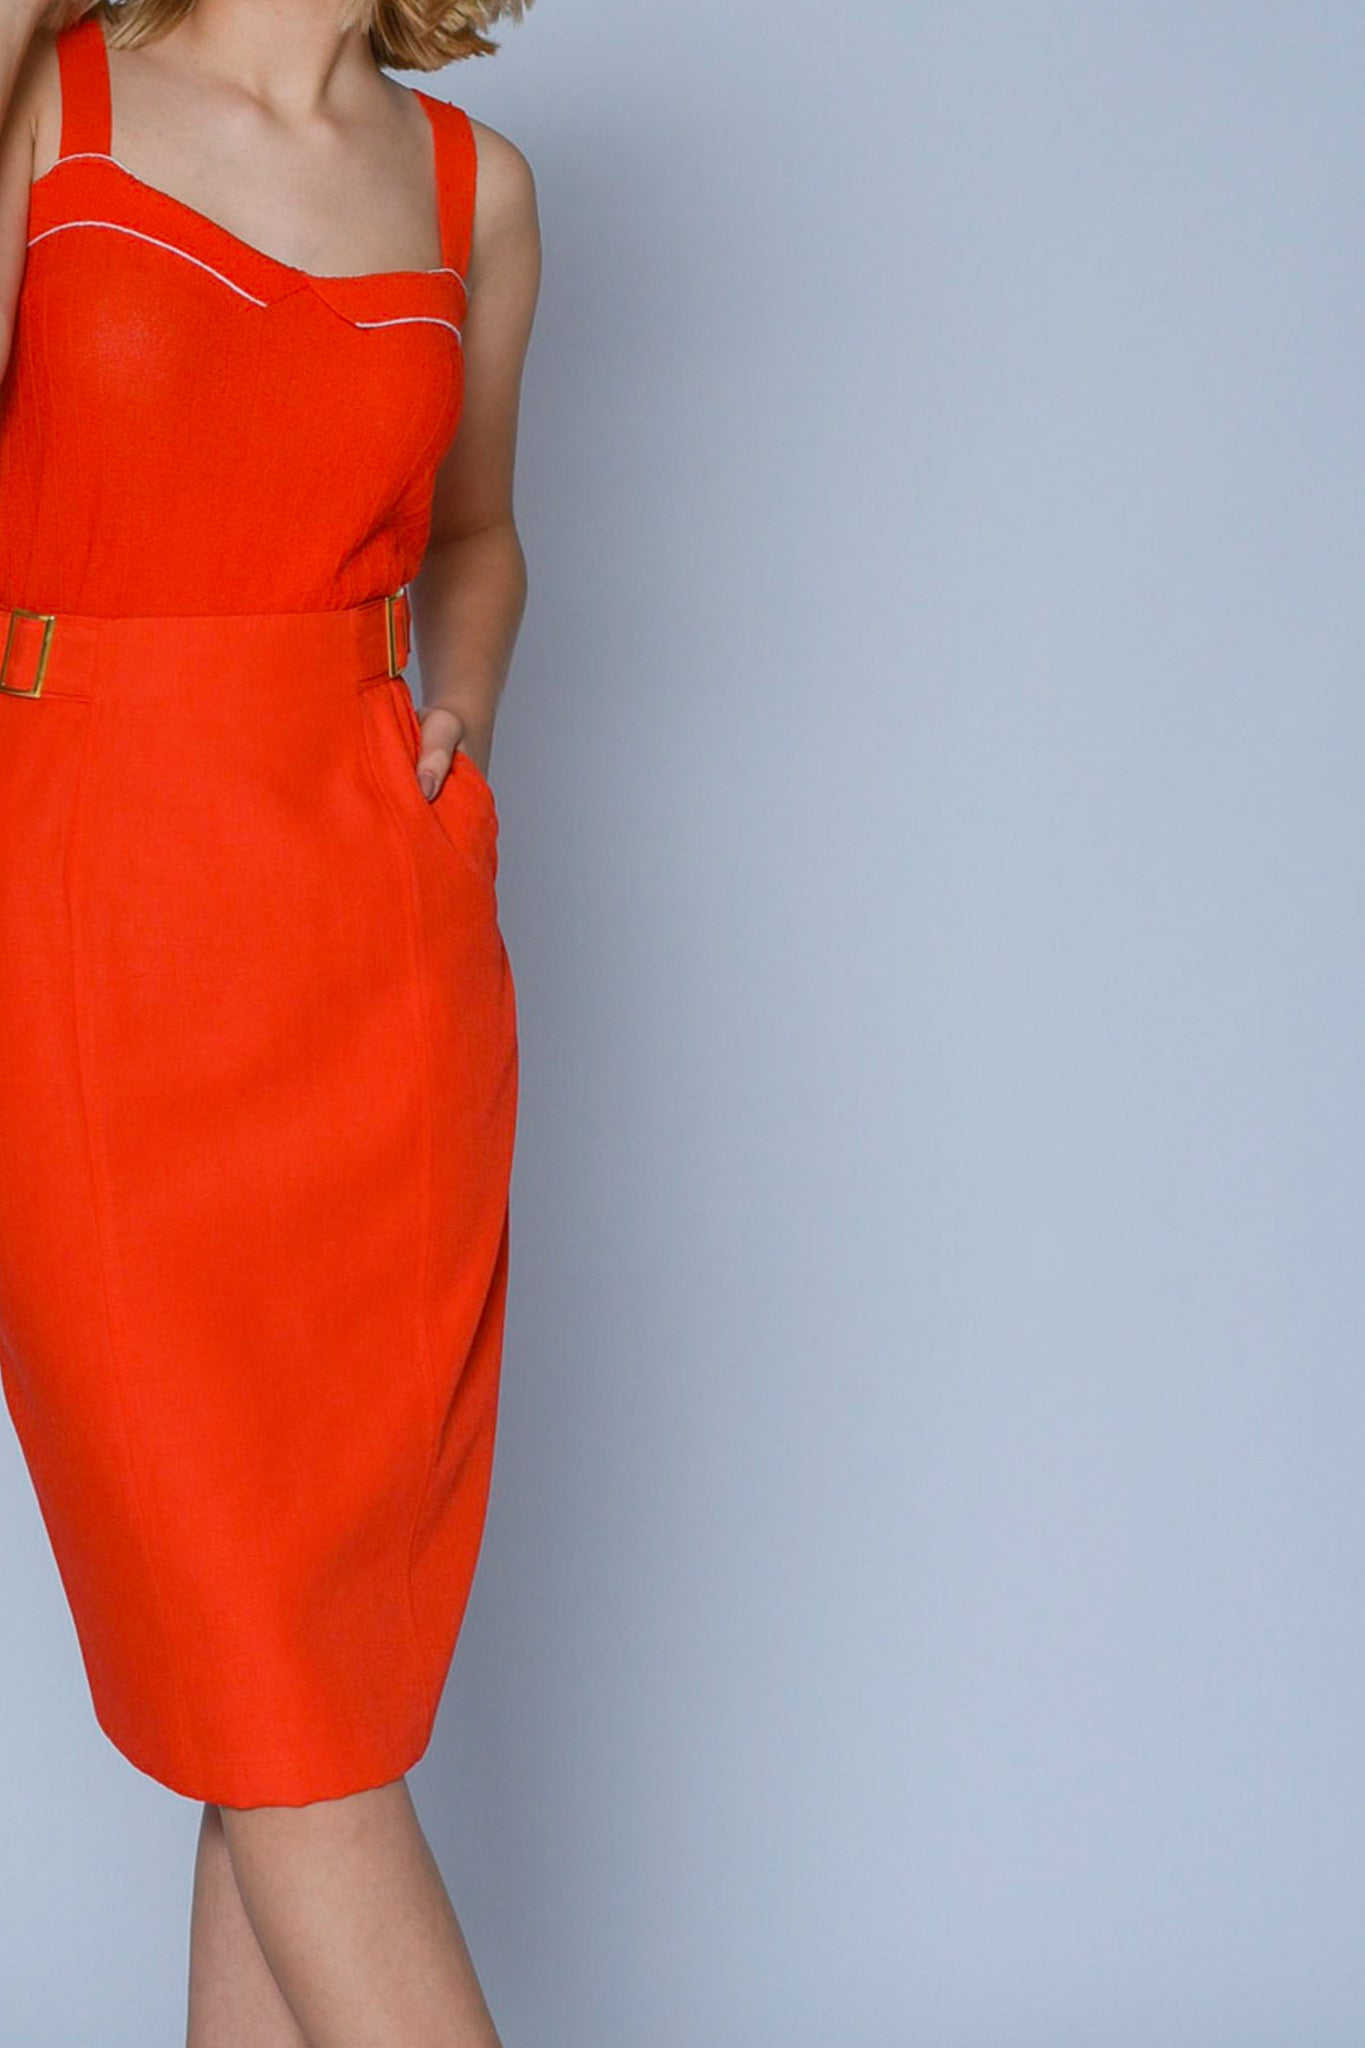 Vintage orange pencil skirt - SoLovesVintage